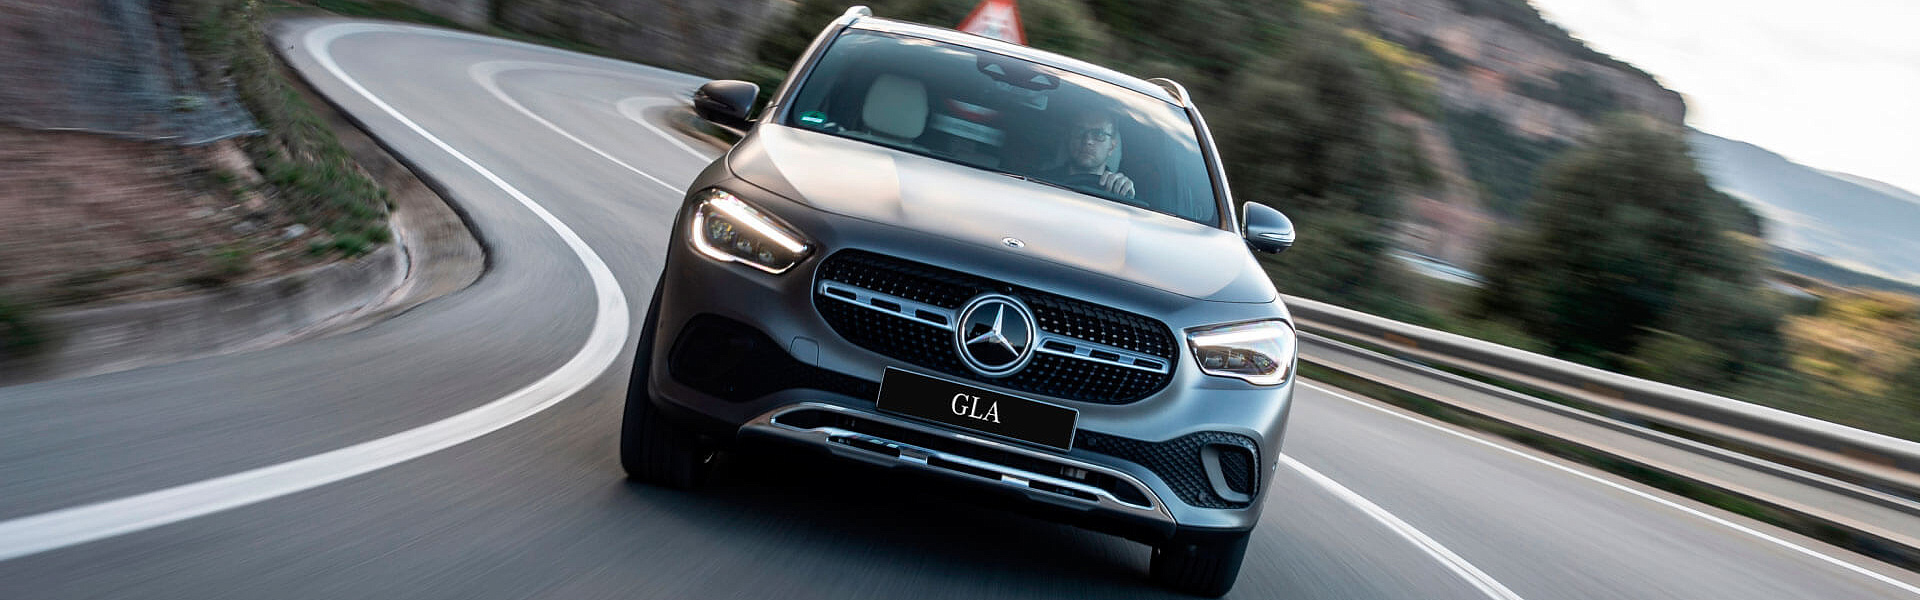 Цена Mercedes Benz GLA в Уфе